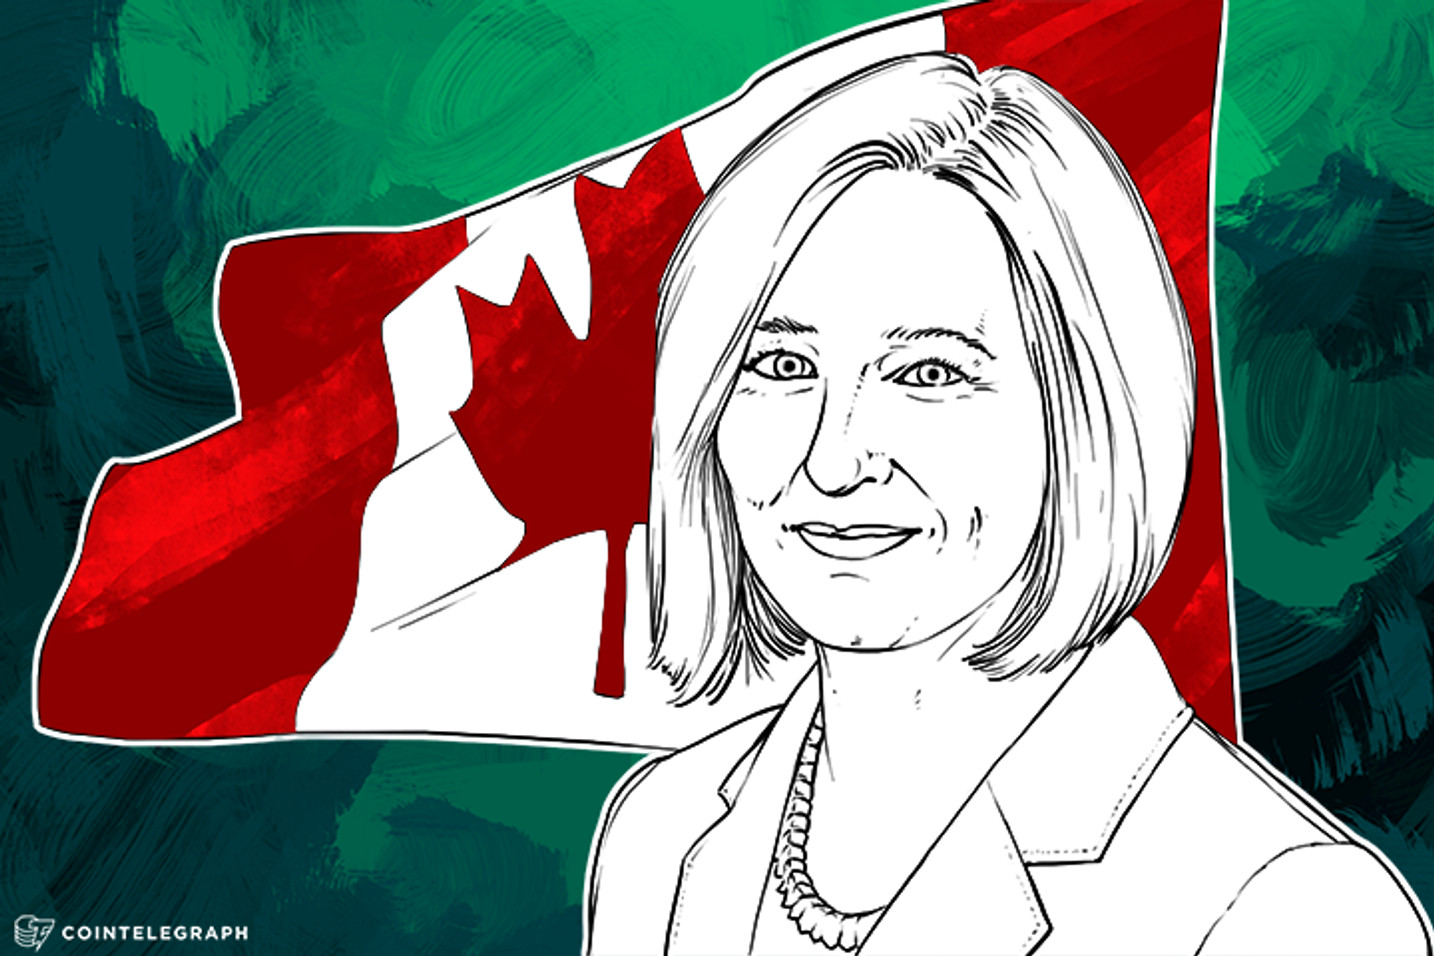 Monetary policy of Canada: Prospects and Dangers of Digital Currency